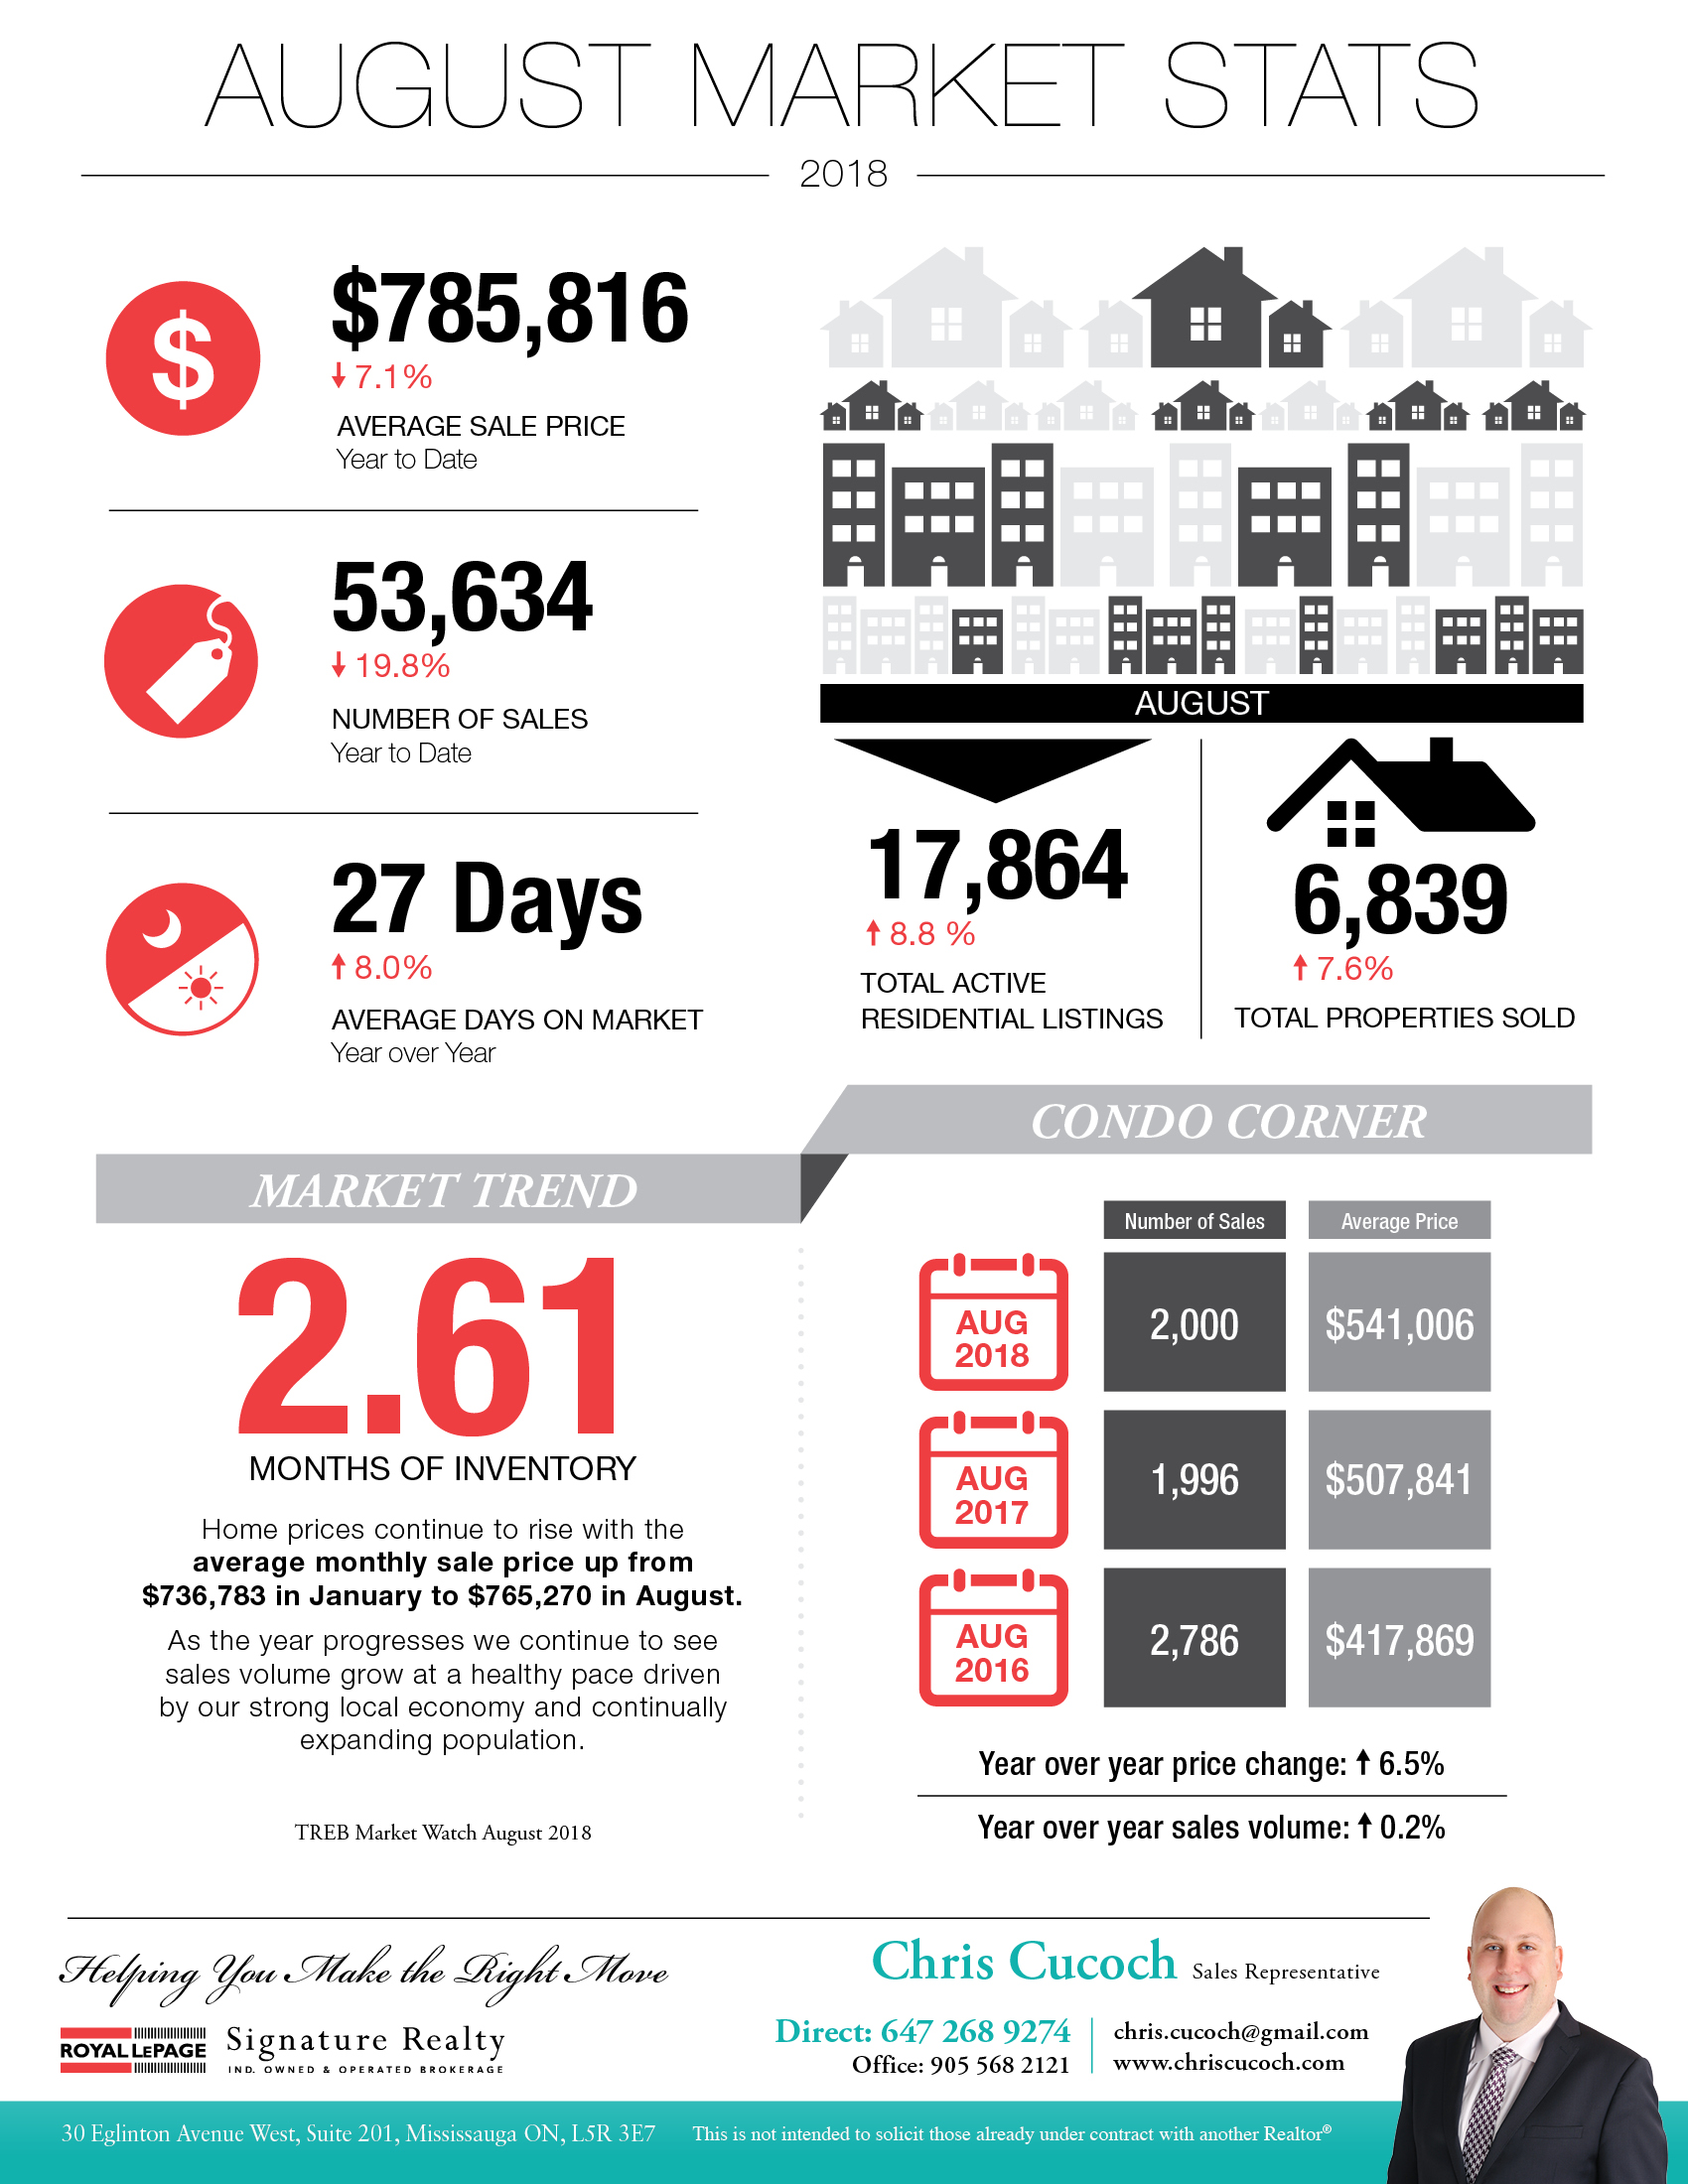 Toronto Real Estate Market Statistics Infographic for August 2018